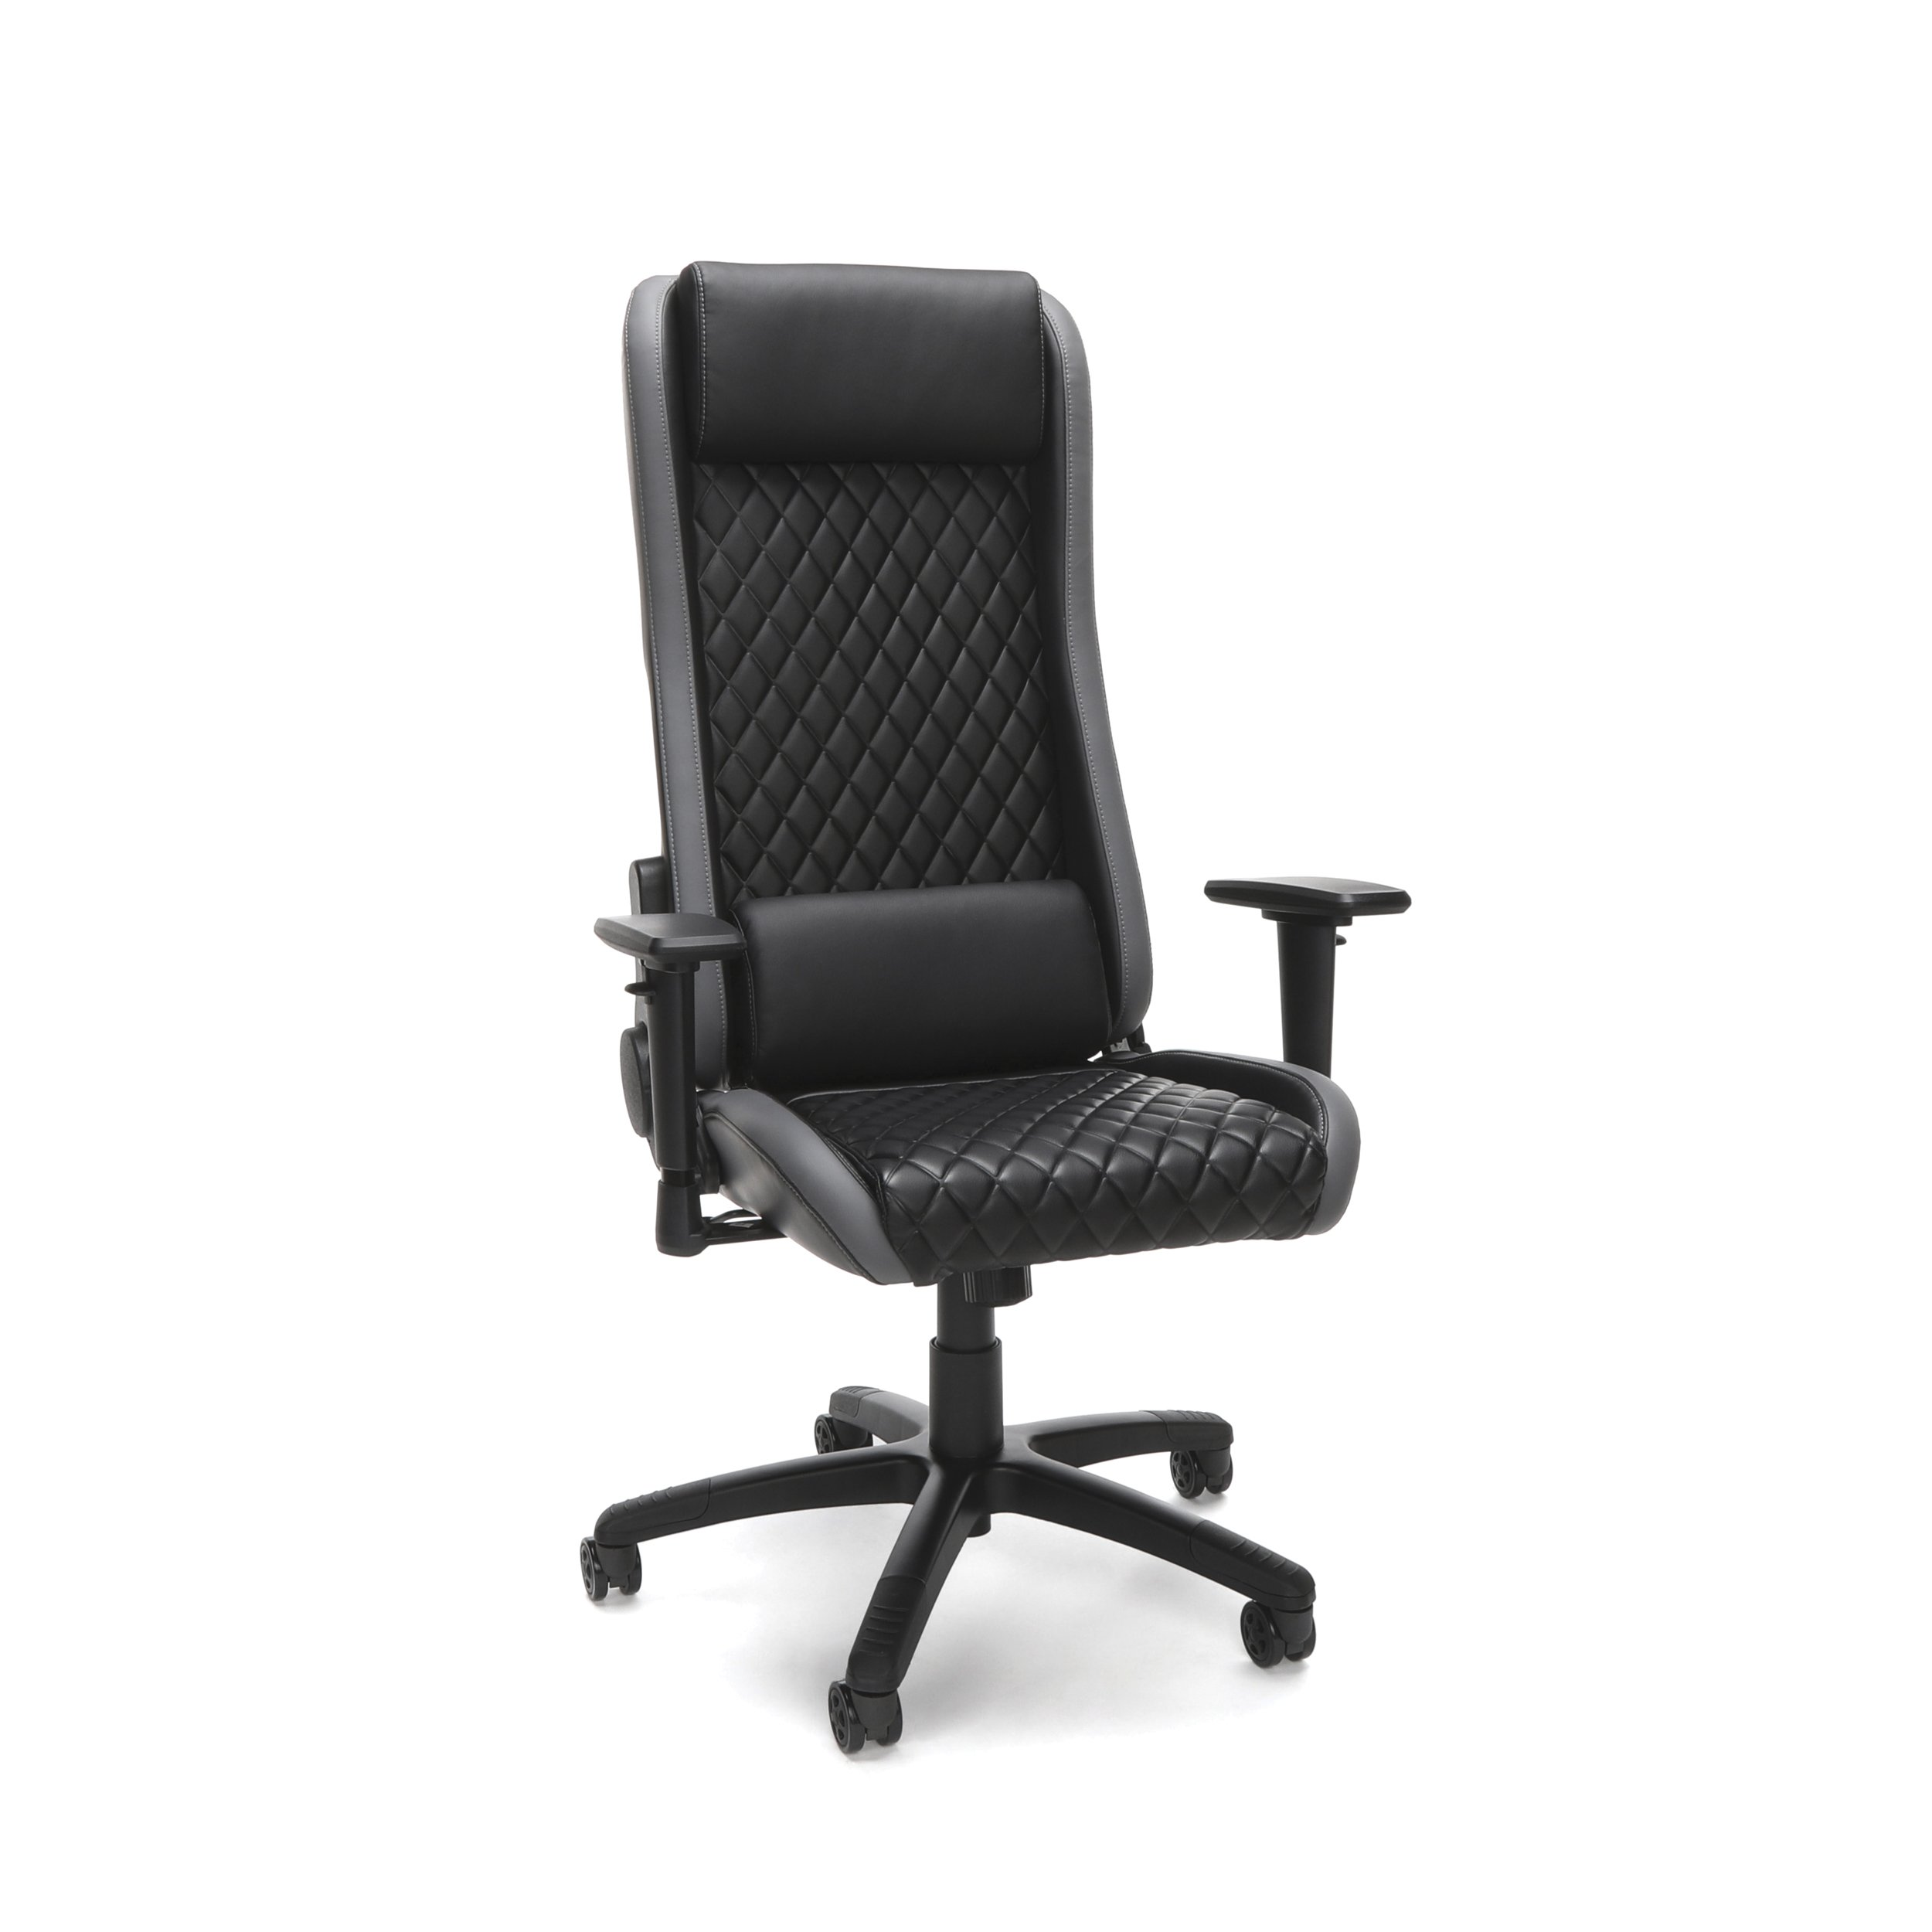 RESPAWN-115 Executive Style Gaming Chair - Reclining Ergonomic Leather Chair, Office or Gaming Chair by RESPAWN